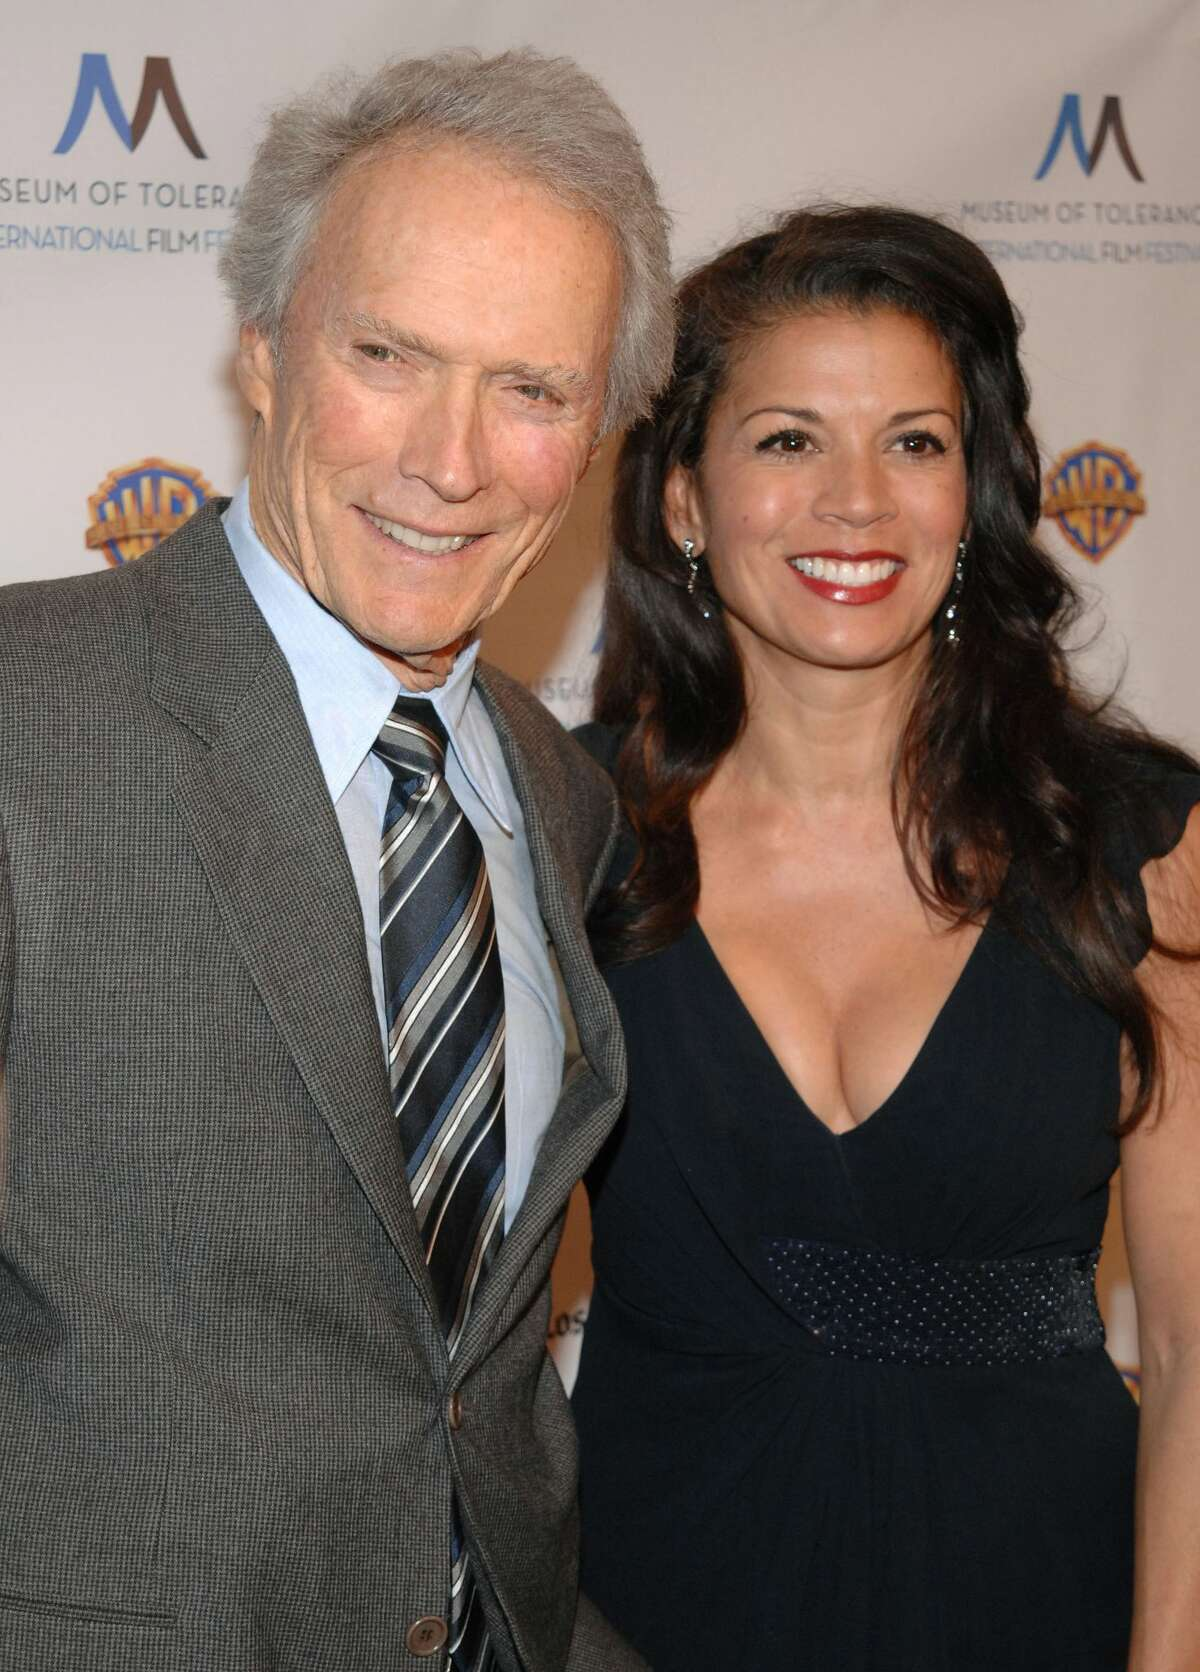 Couple: Clint Eastwood and Dina Ruiz Relationship: Married (1996-2014) Reality Show: